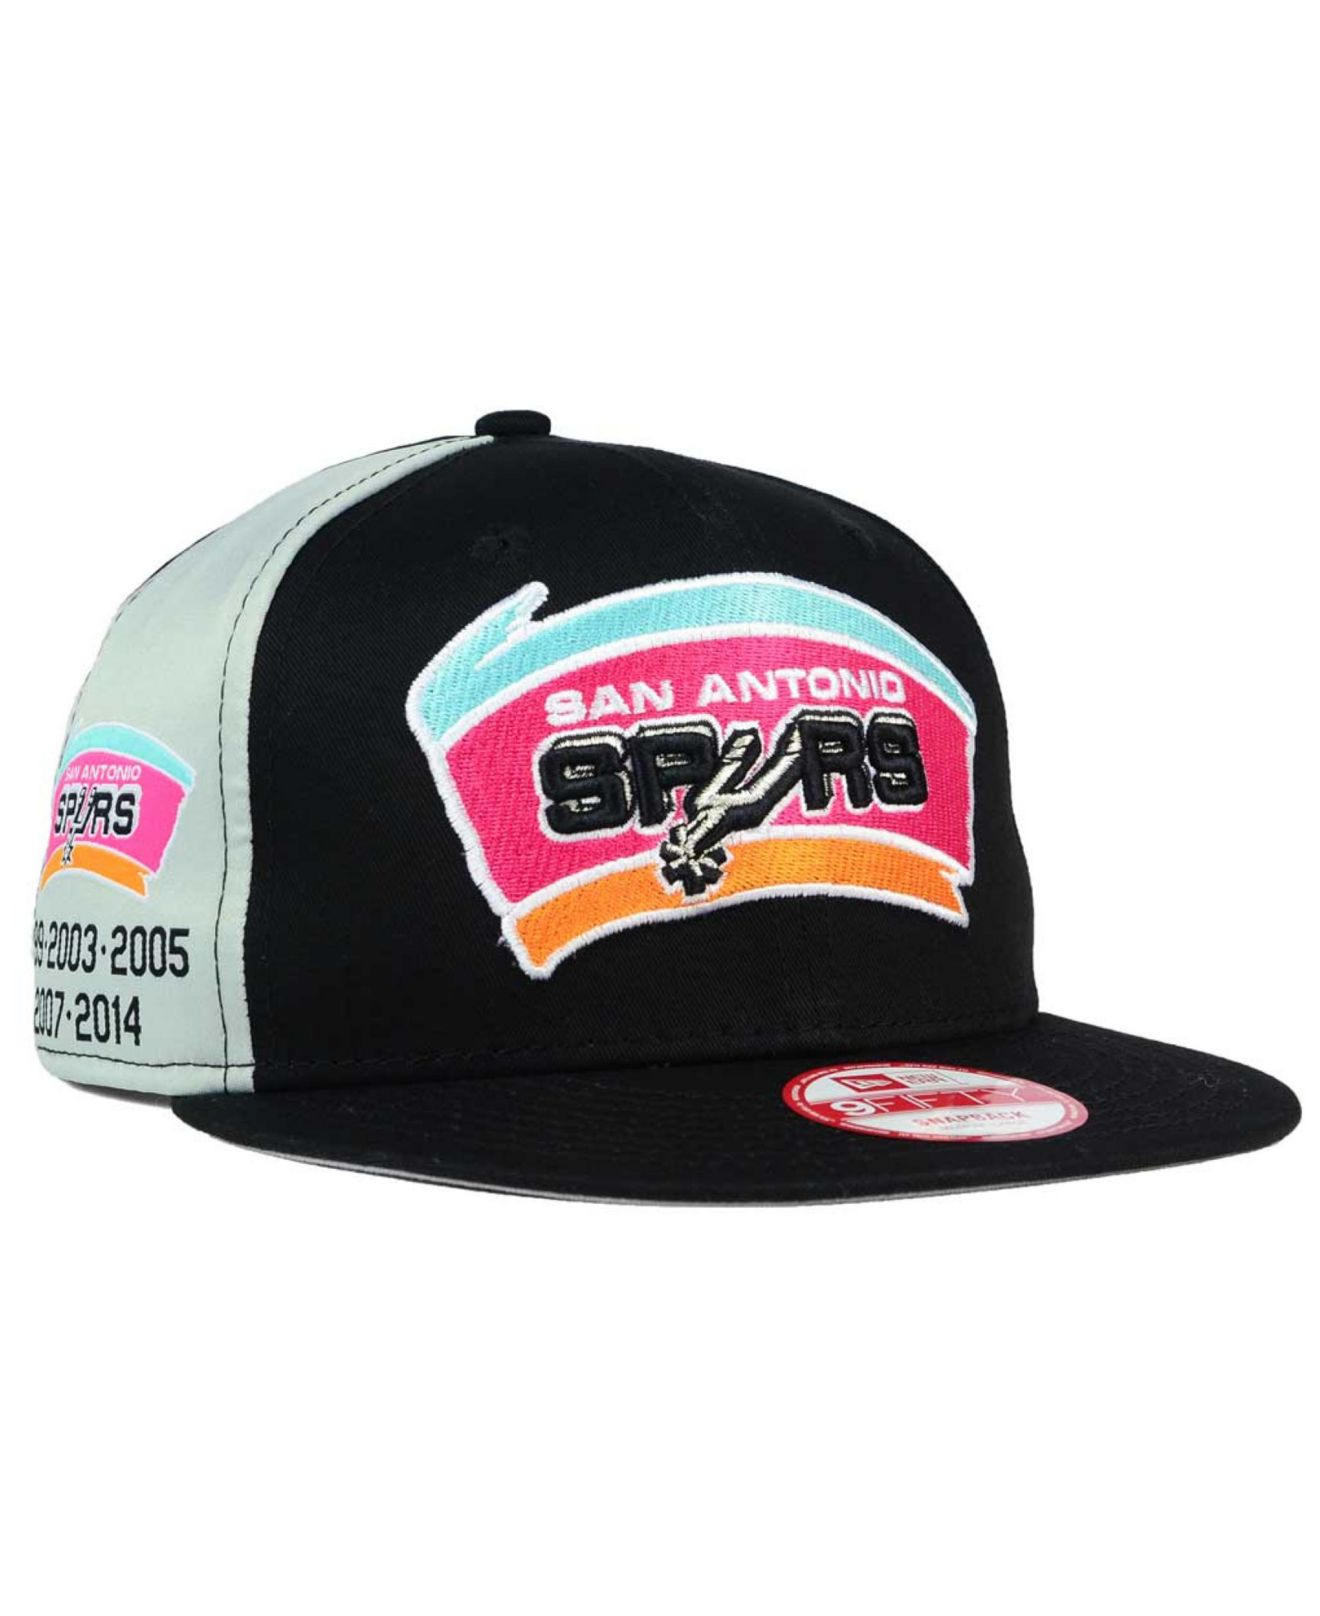 a07f2a1d7 ... free shipping lyst ktz san antonio spurs panel pride 9fifty snapback  cap in f8f28 80e6a